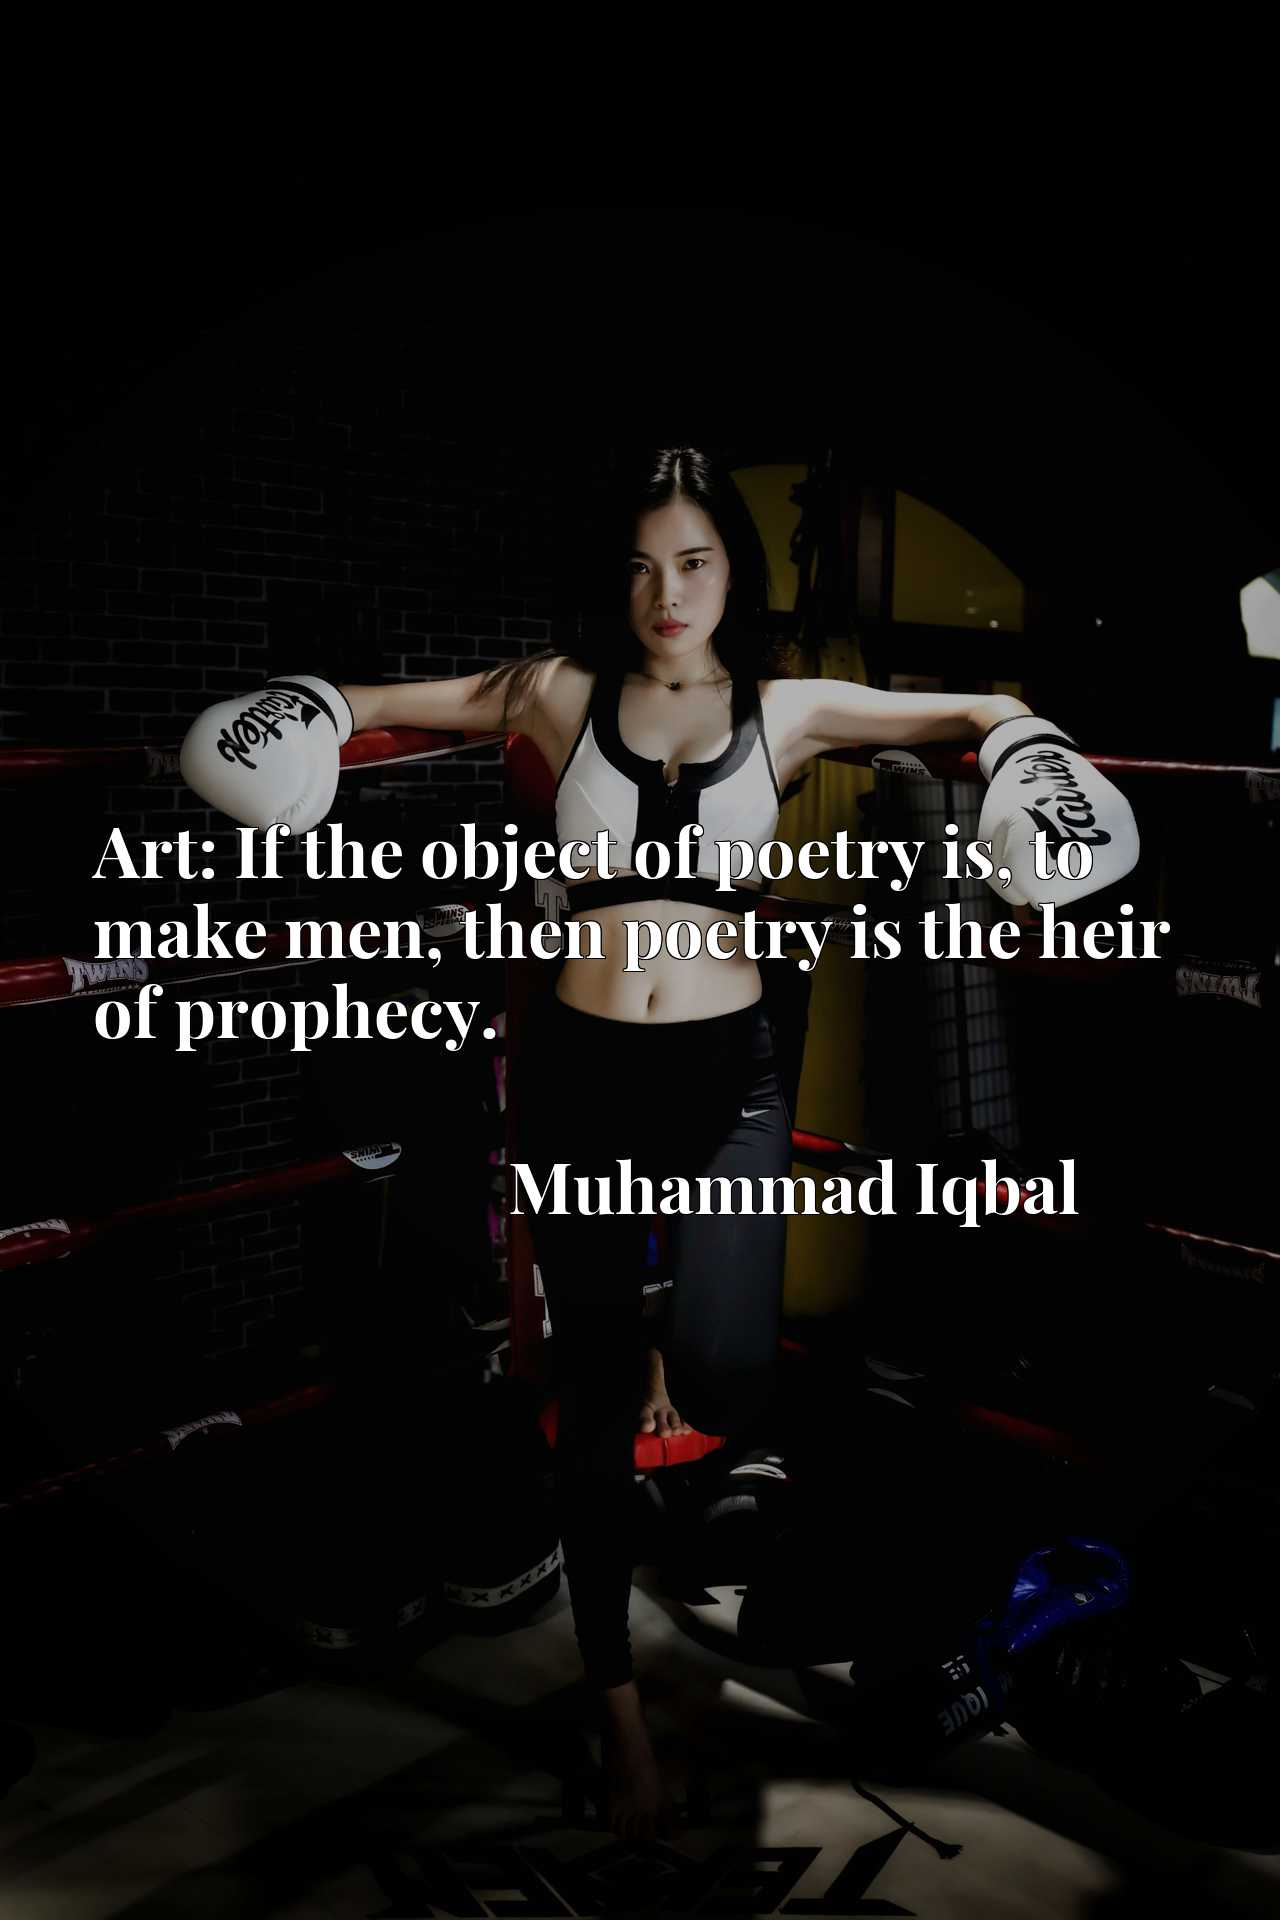 Art: If the object of poetry is, to make men, then poetry is the heir of prophecy.